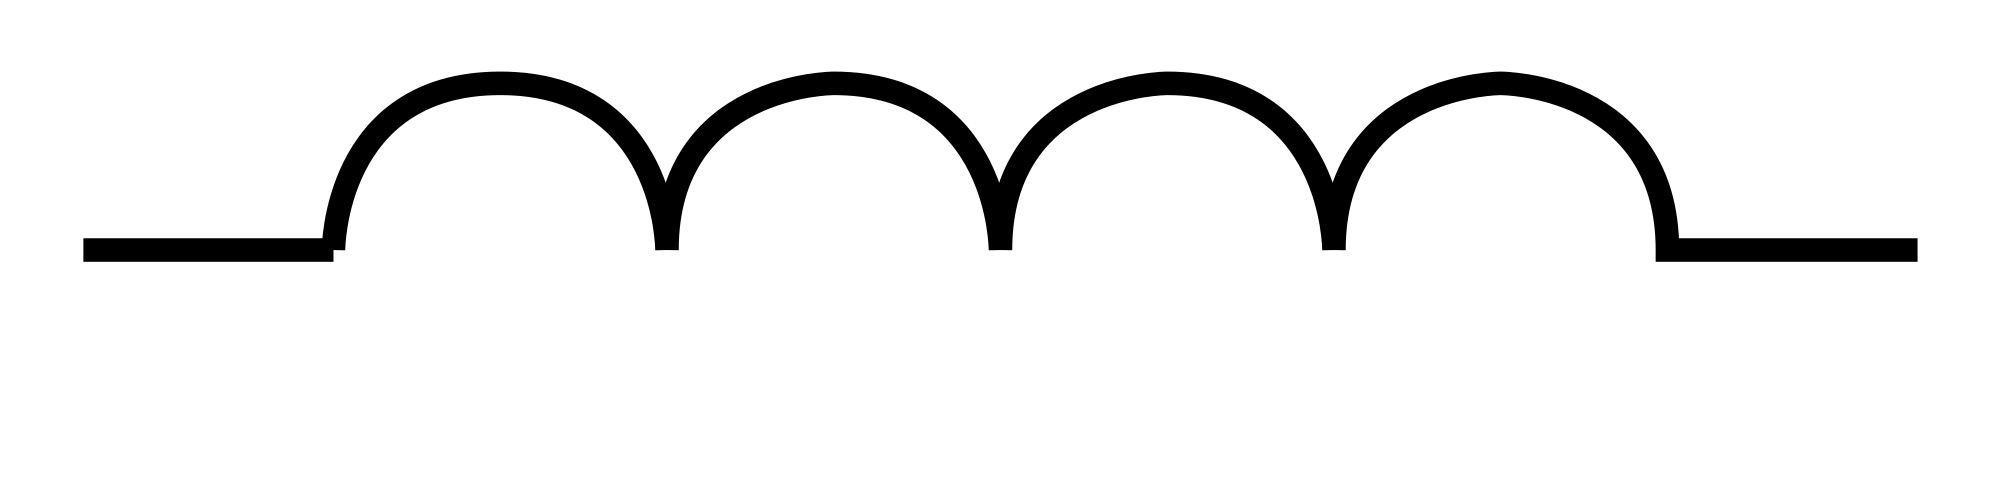 Component. symbol for inductor: Figure 1 9 Air Core Inductor.